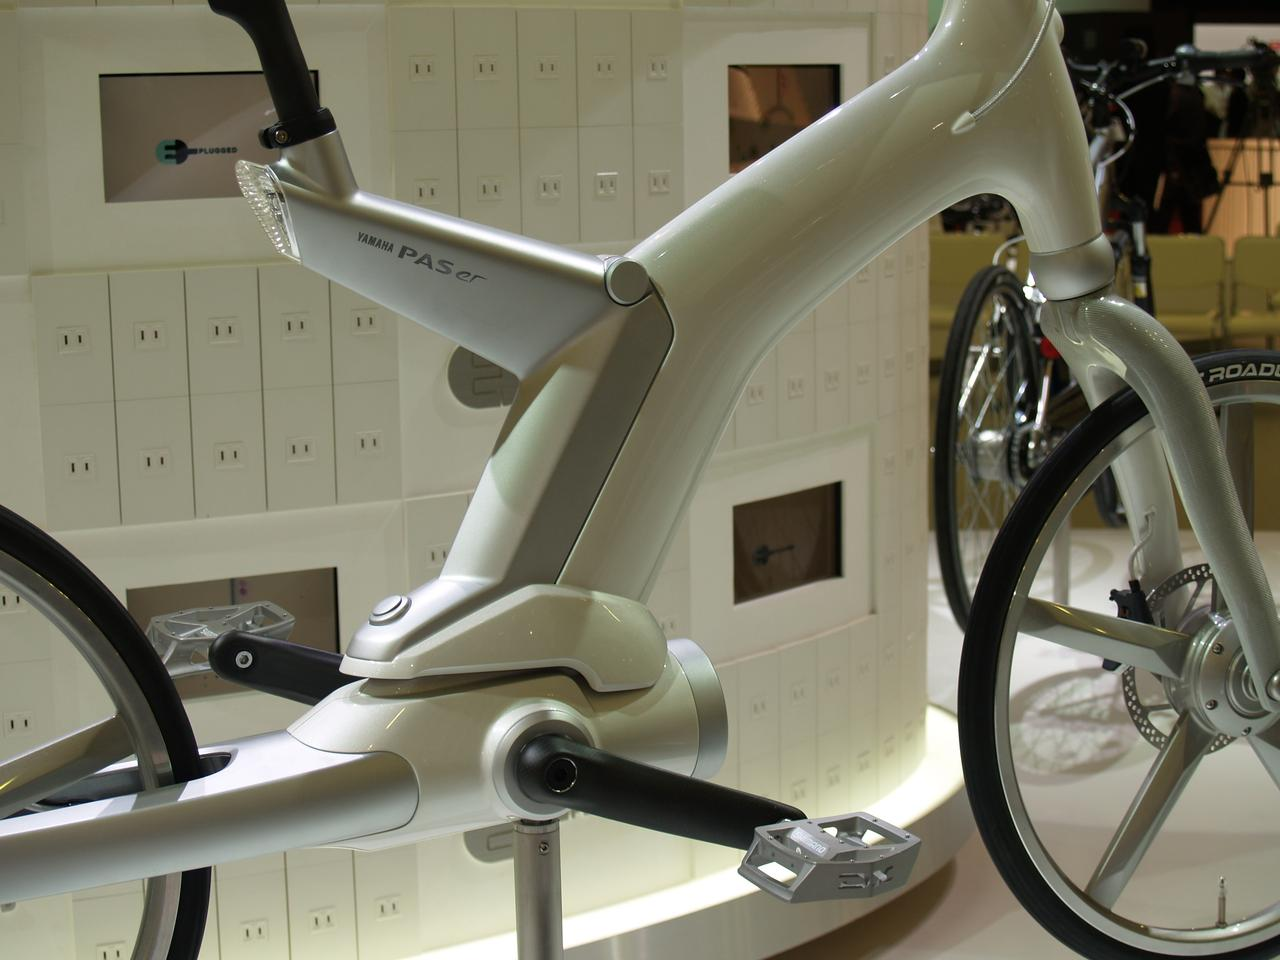 """The Yamaha """"PAS er"""" pedal-assist electric prototype from 2009 will make another appearance in 2011"""